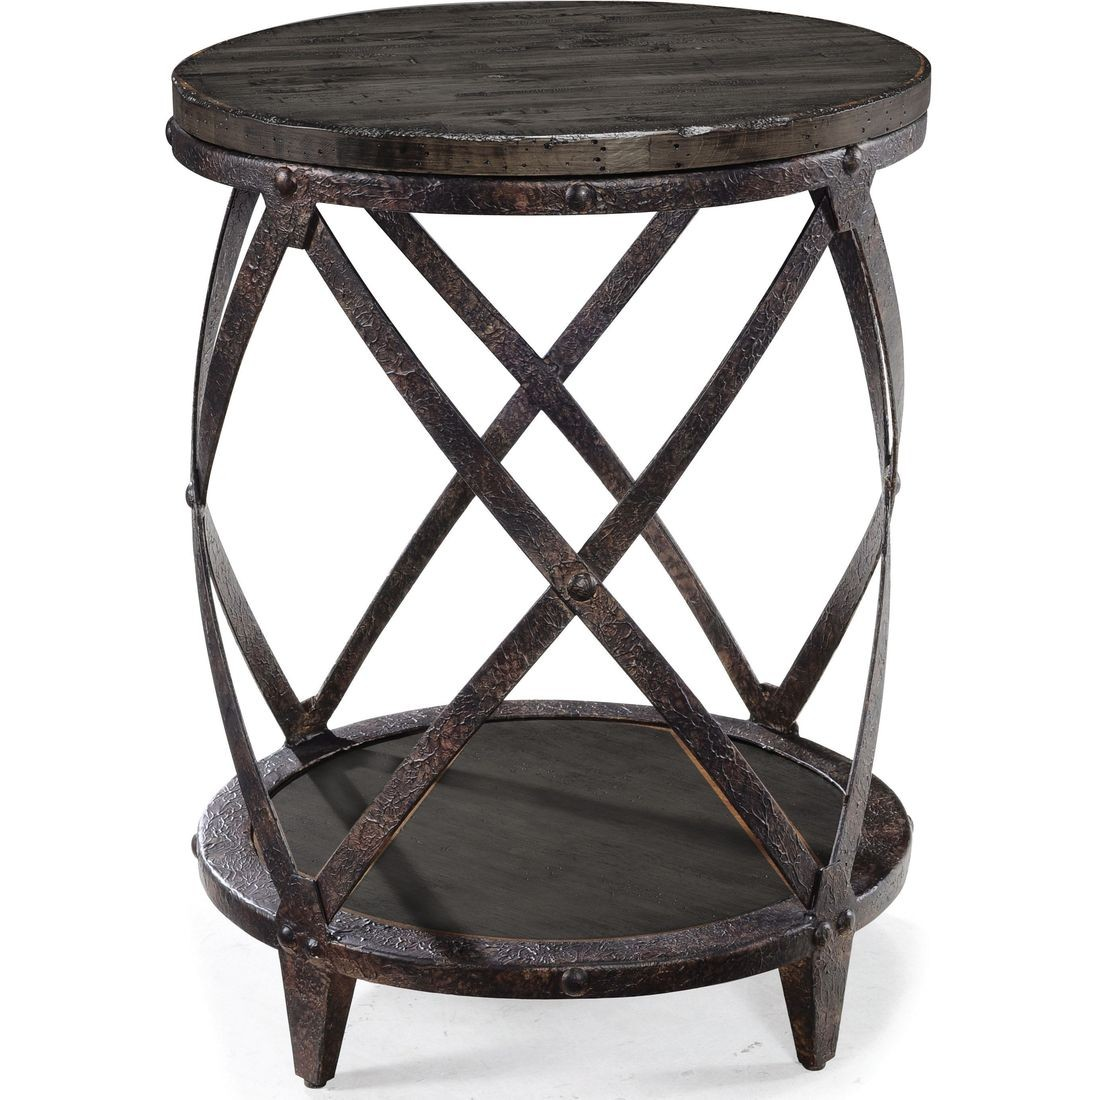 magnussen milford round accent table weathered charcoal and wood metal gunmetal hanging lamps tablecloths napkins decorator pottery barn small kitchen inch height end cabinet